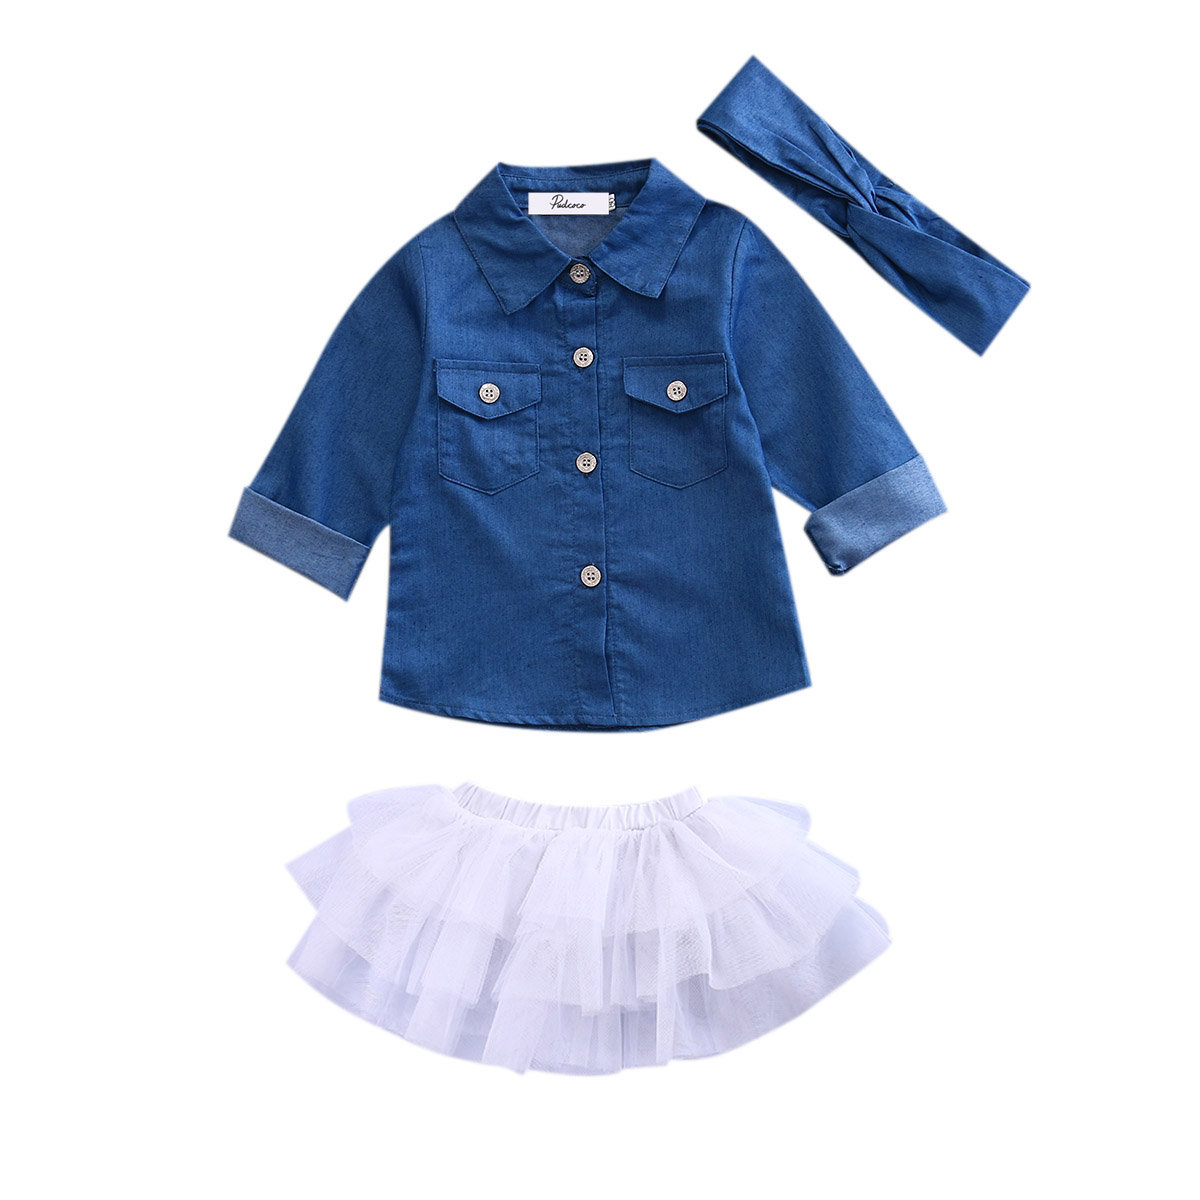 Cotton Newest New Kids Baby Girls Denim Full Sleeve Tops Shirt+Tutu Skirts Headband 3pcs Outfits Set 2pcs baby kids girls rabbit bunny green cotton t shirt tops dots denim bib overalls skirts outfit clothes 1 5y